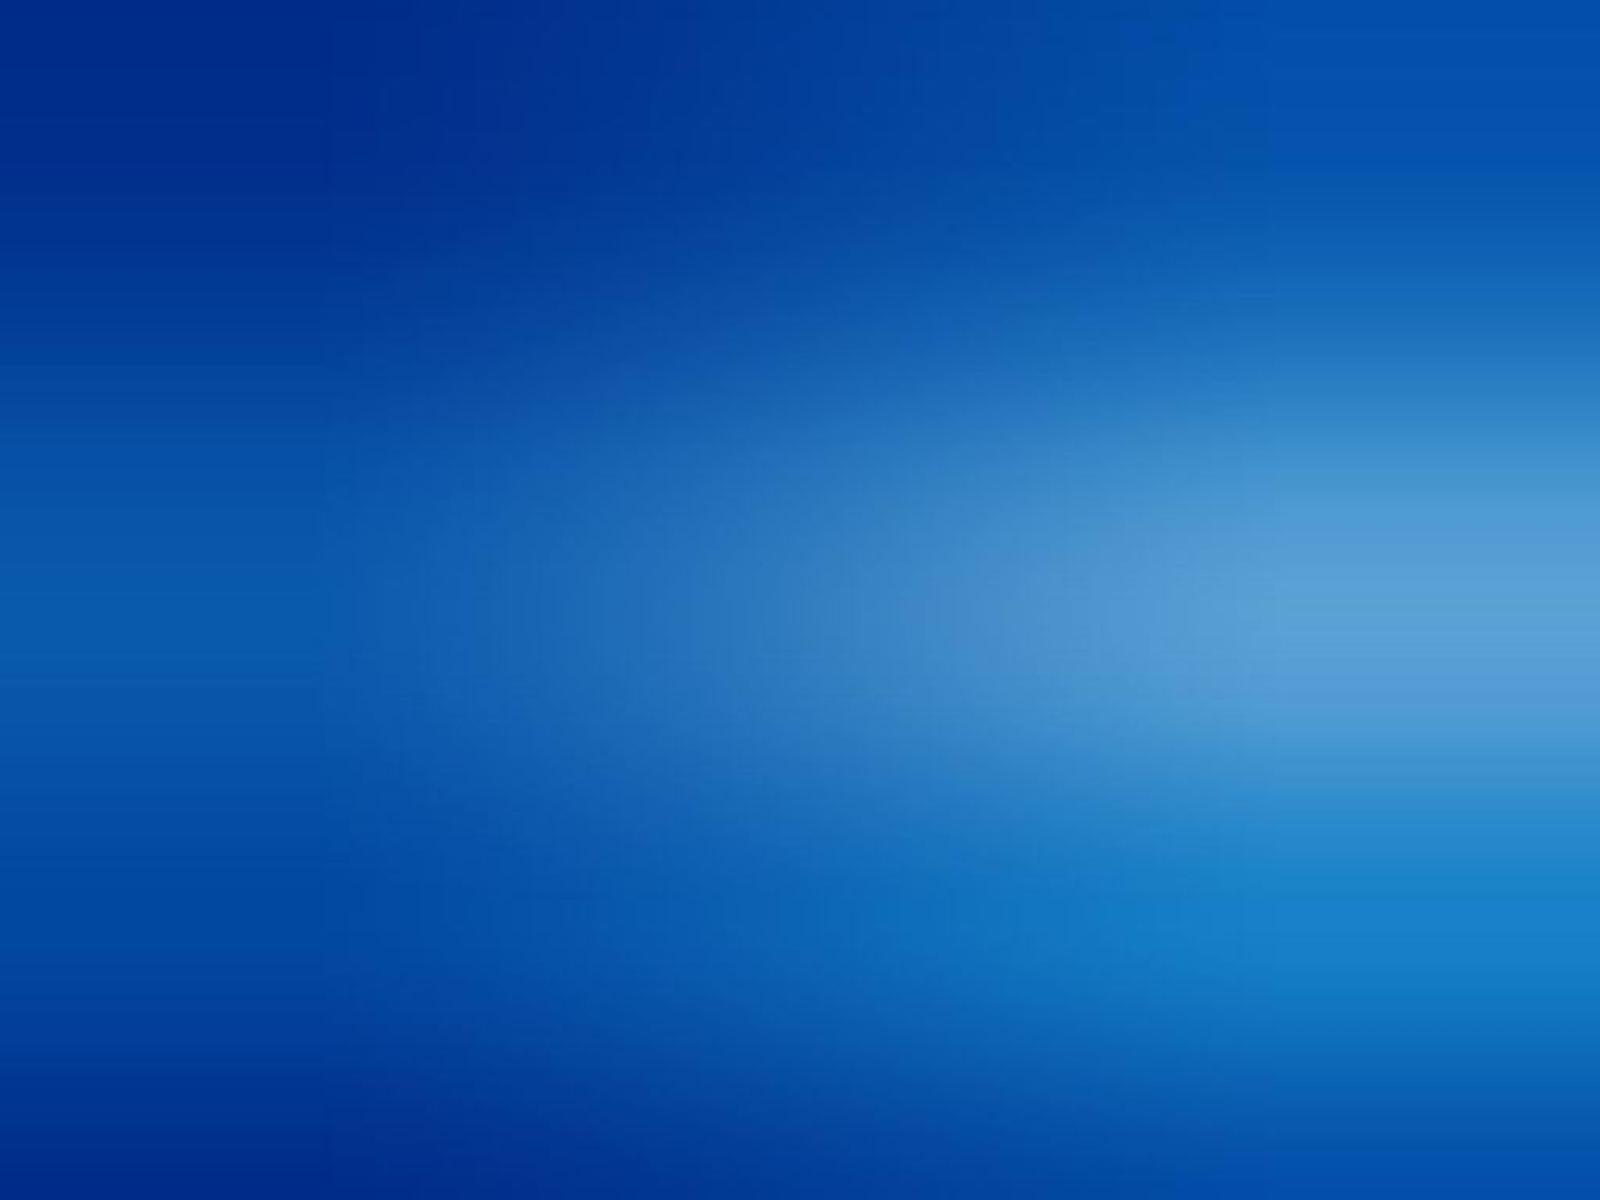 plain blue backgrounds wallpapers - wallpaper cave